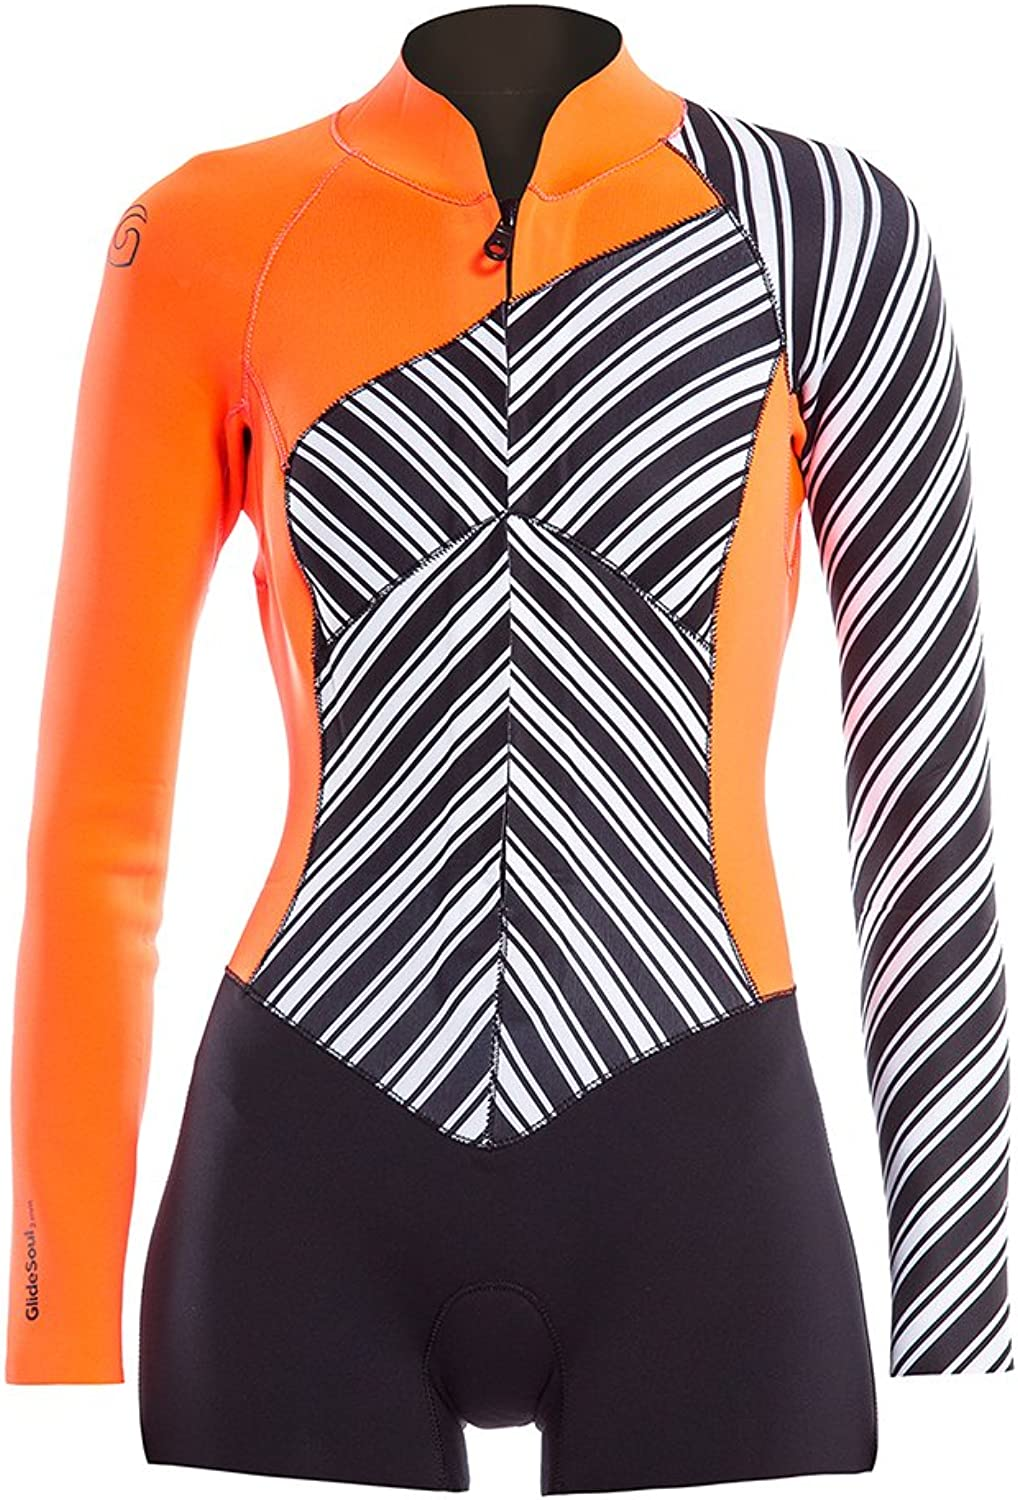 Glidesoul Women's Vibrant Stripes Collection 2mm Spring Suit, Stripes Print Black Peach, XSmall